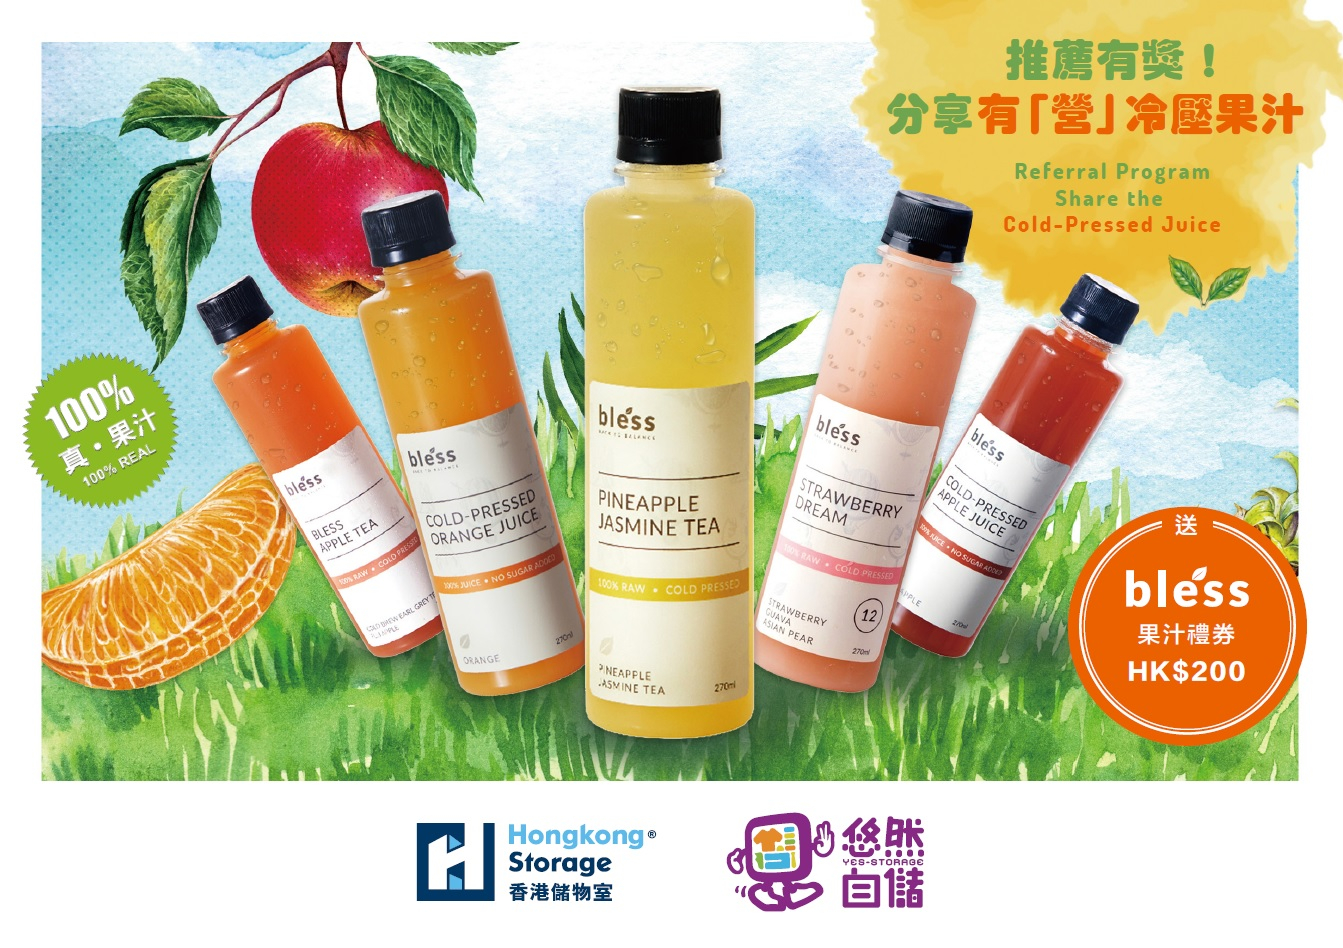 Referral Program Share The Cold Pressed Juice Hongkong